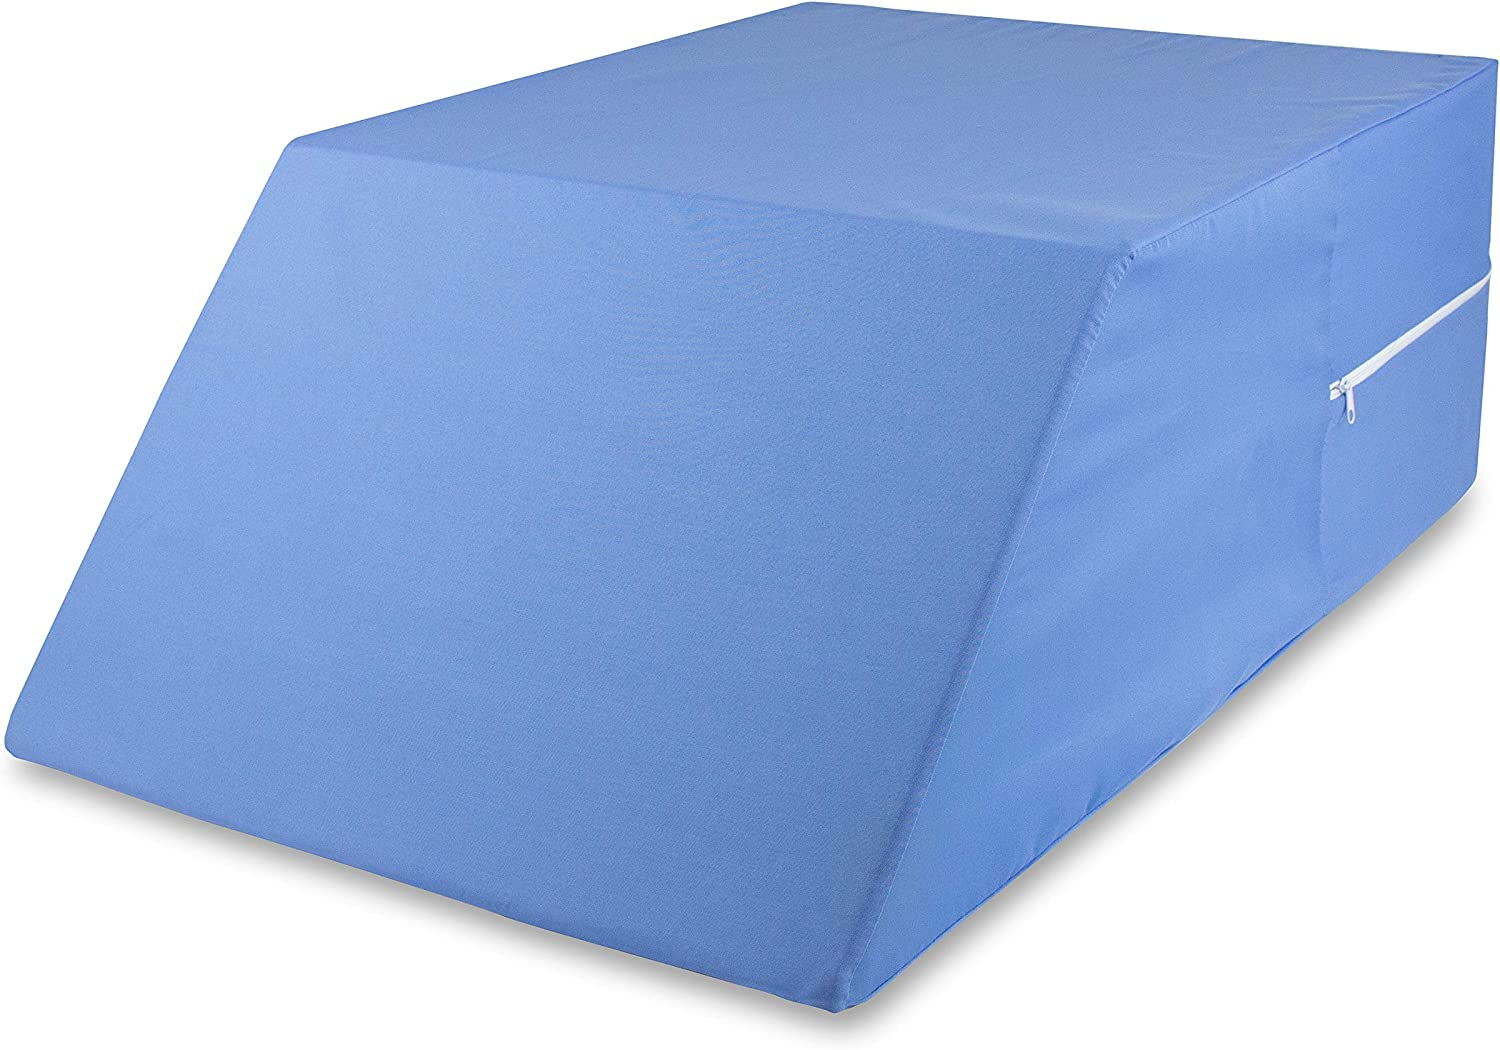 "DMI Ortho Bed Wedge Elevated Leg Pillow, Supportive Foam Wedge Pillow for Elevating Legs, Improved Circulation, Reducing Back Pain, Post Surgery and Injury, Recovery, Blue, 10"" x 20"" x 30.5"""